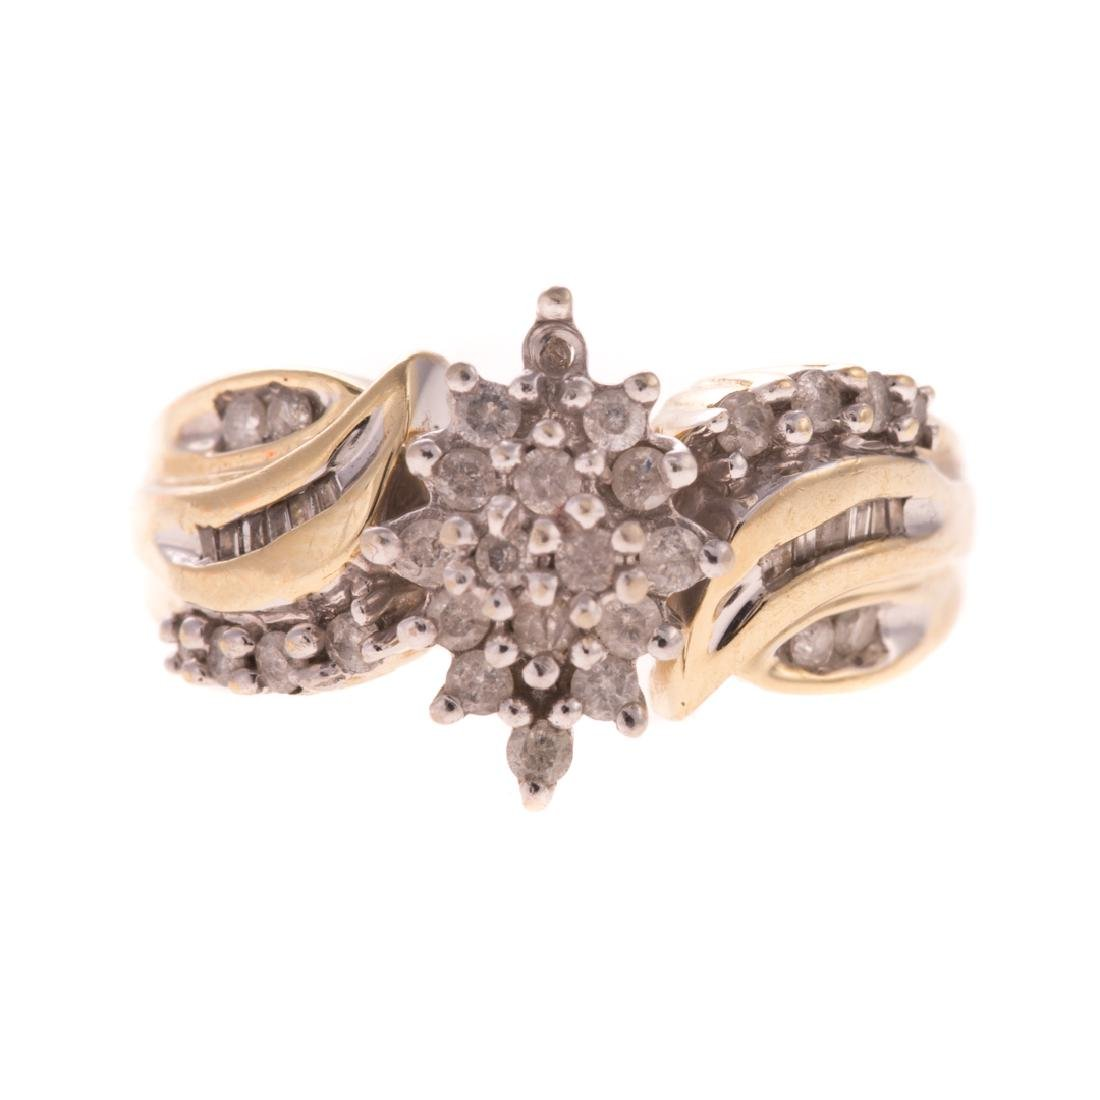 A Lady's 10K Diamond Cluster Ring